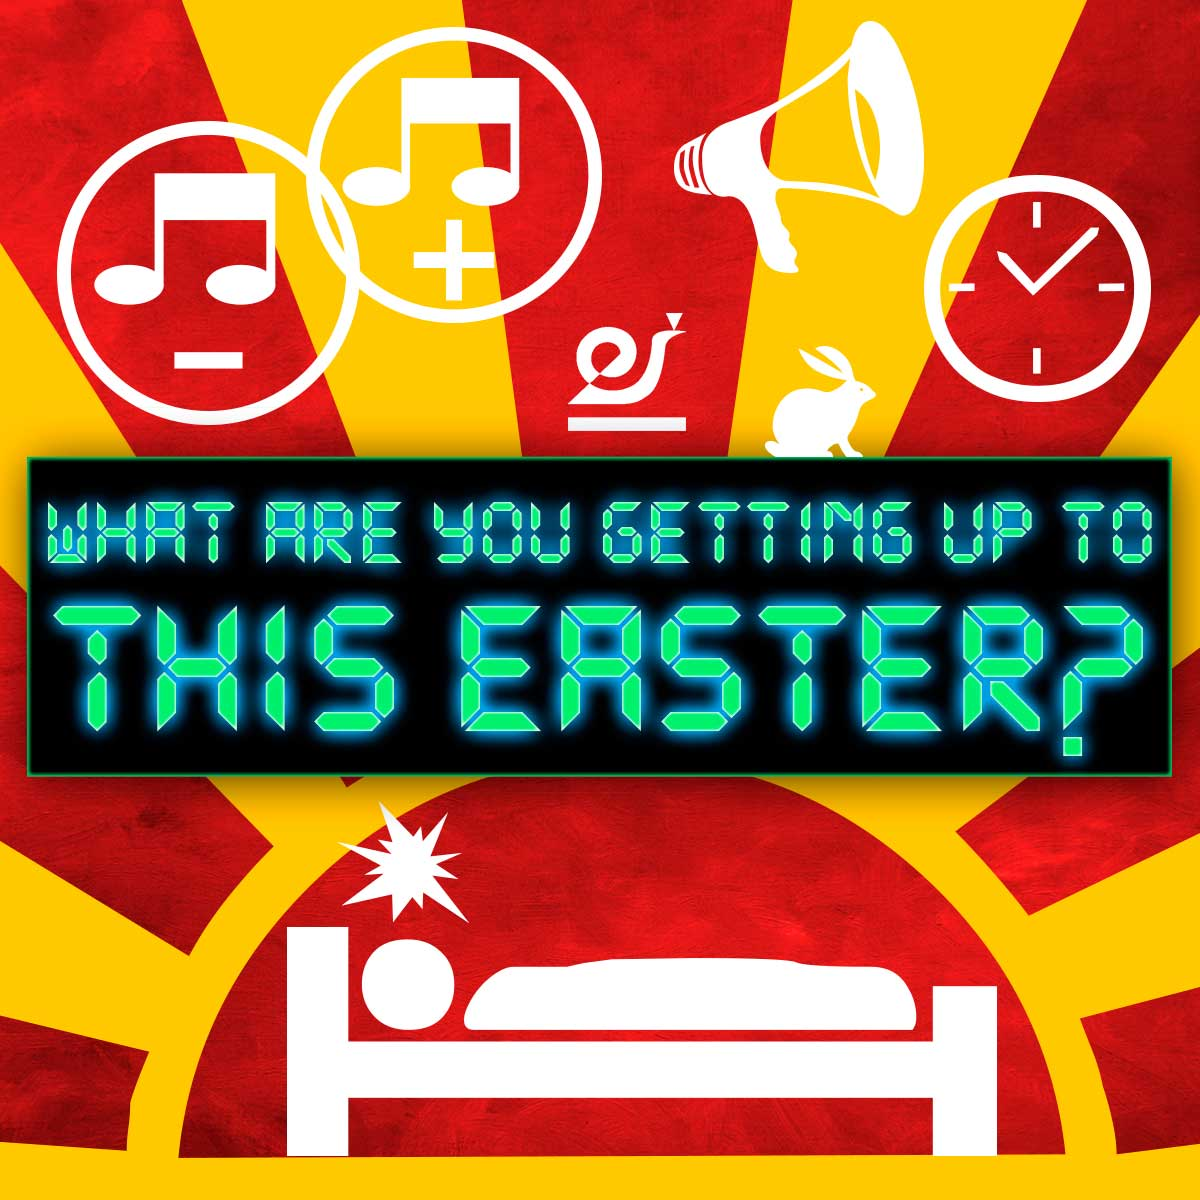 What are you getting up to this Easter?